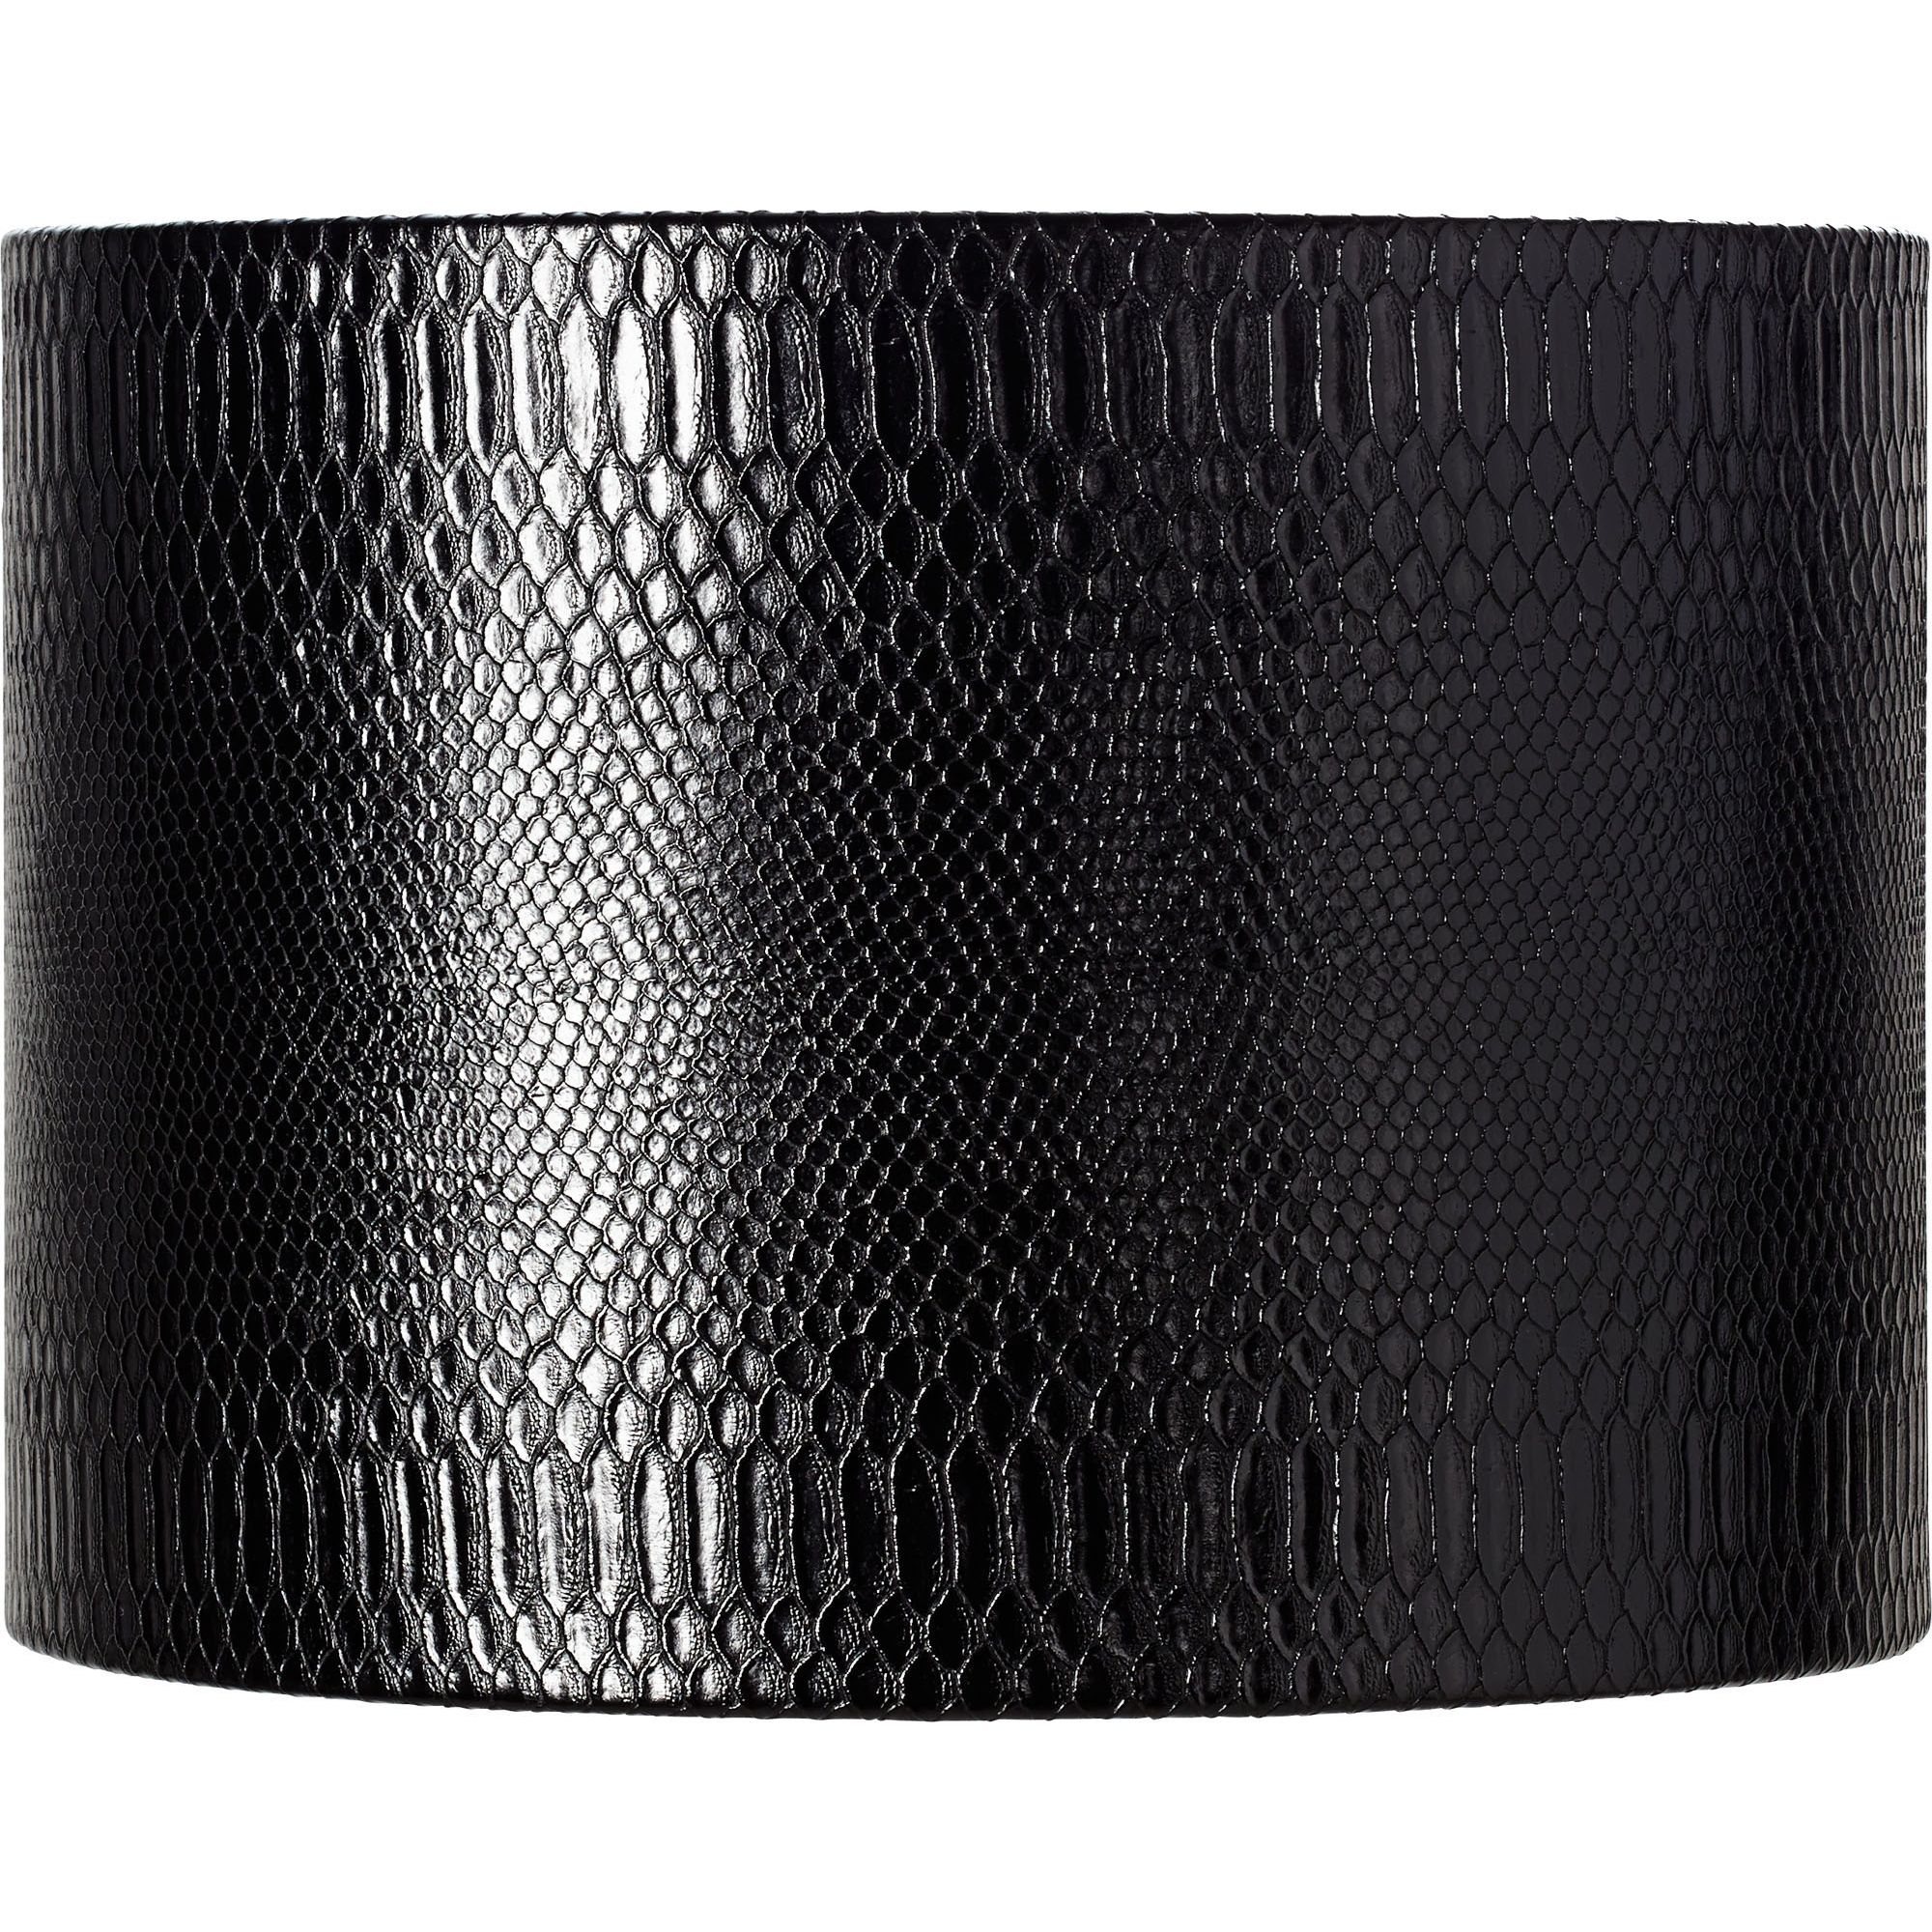 Springcrest Reptile Print Shade with Silver Lining 15x15x11 (Spider)